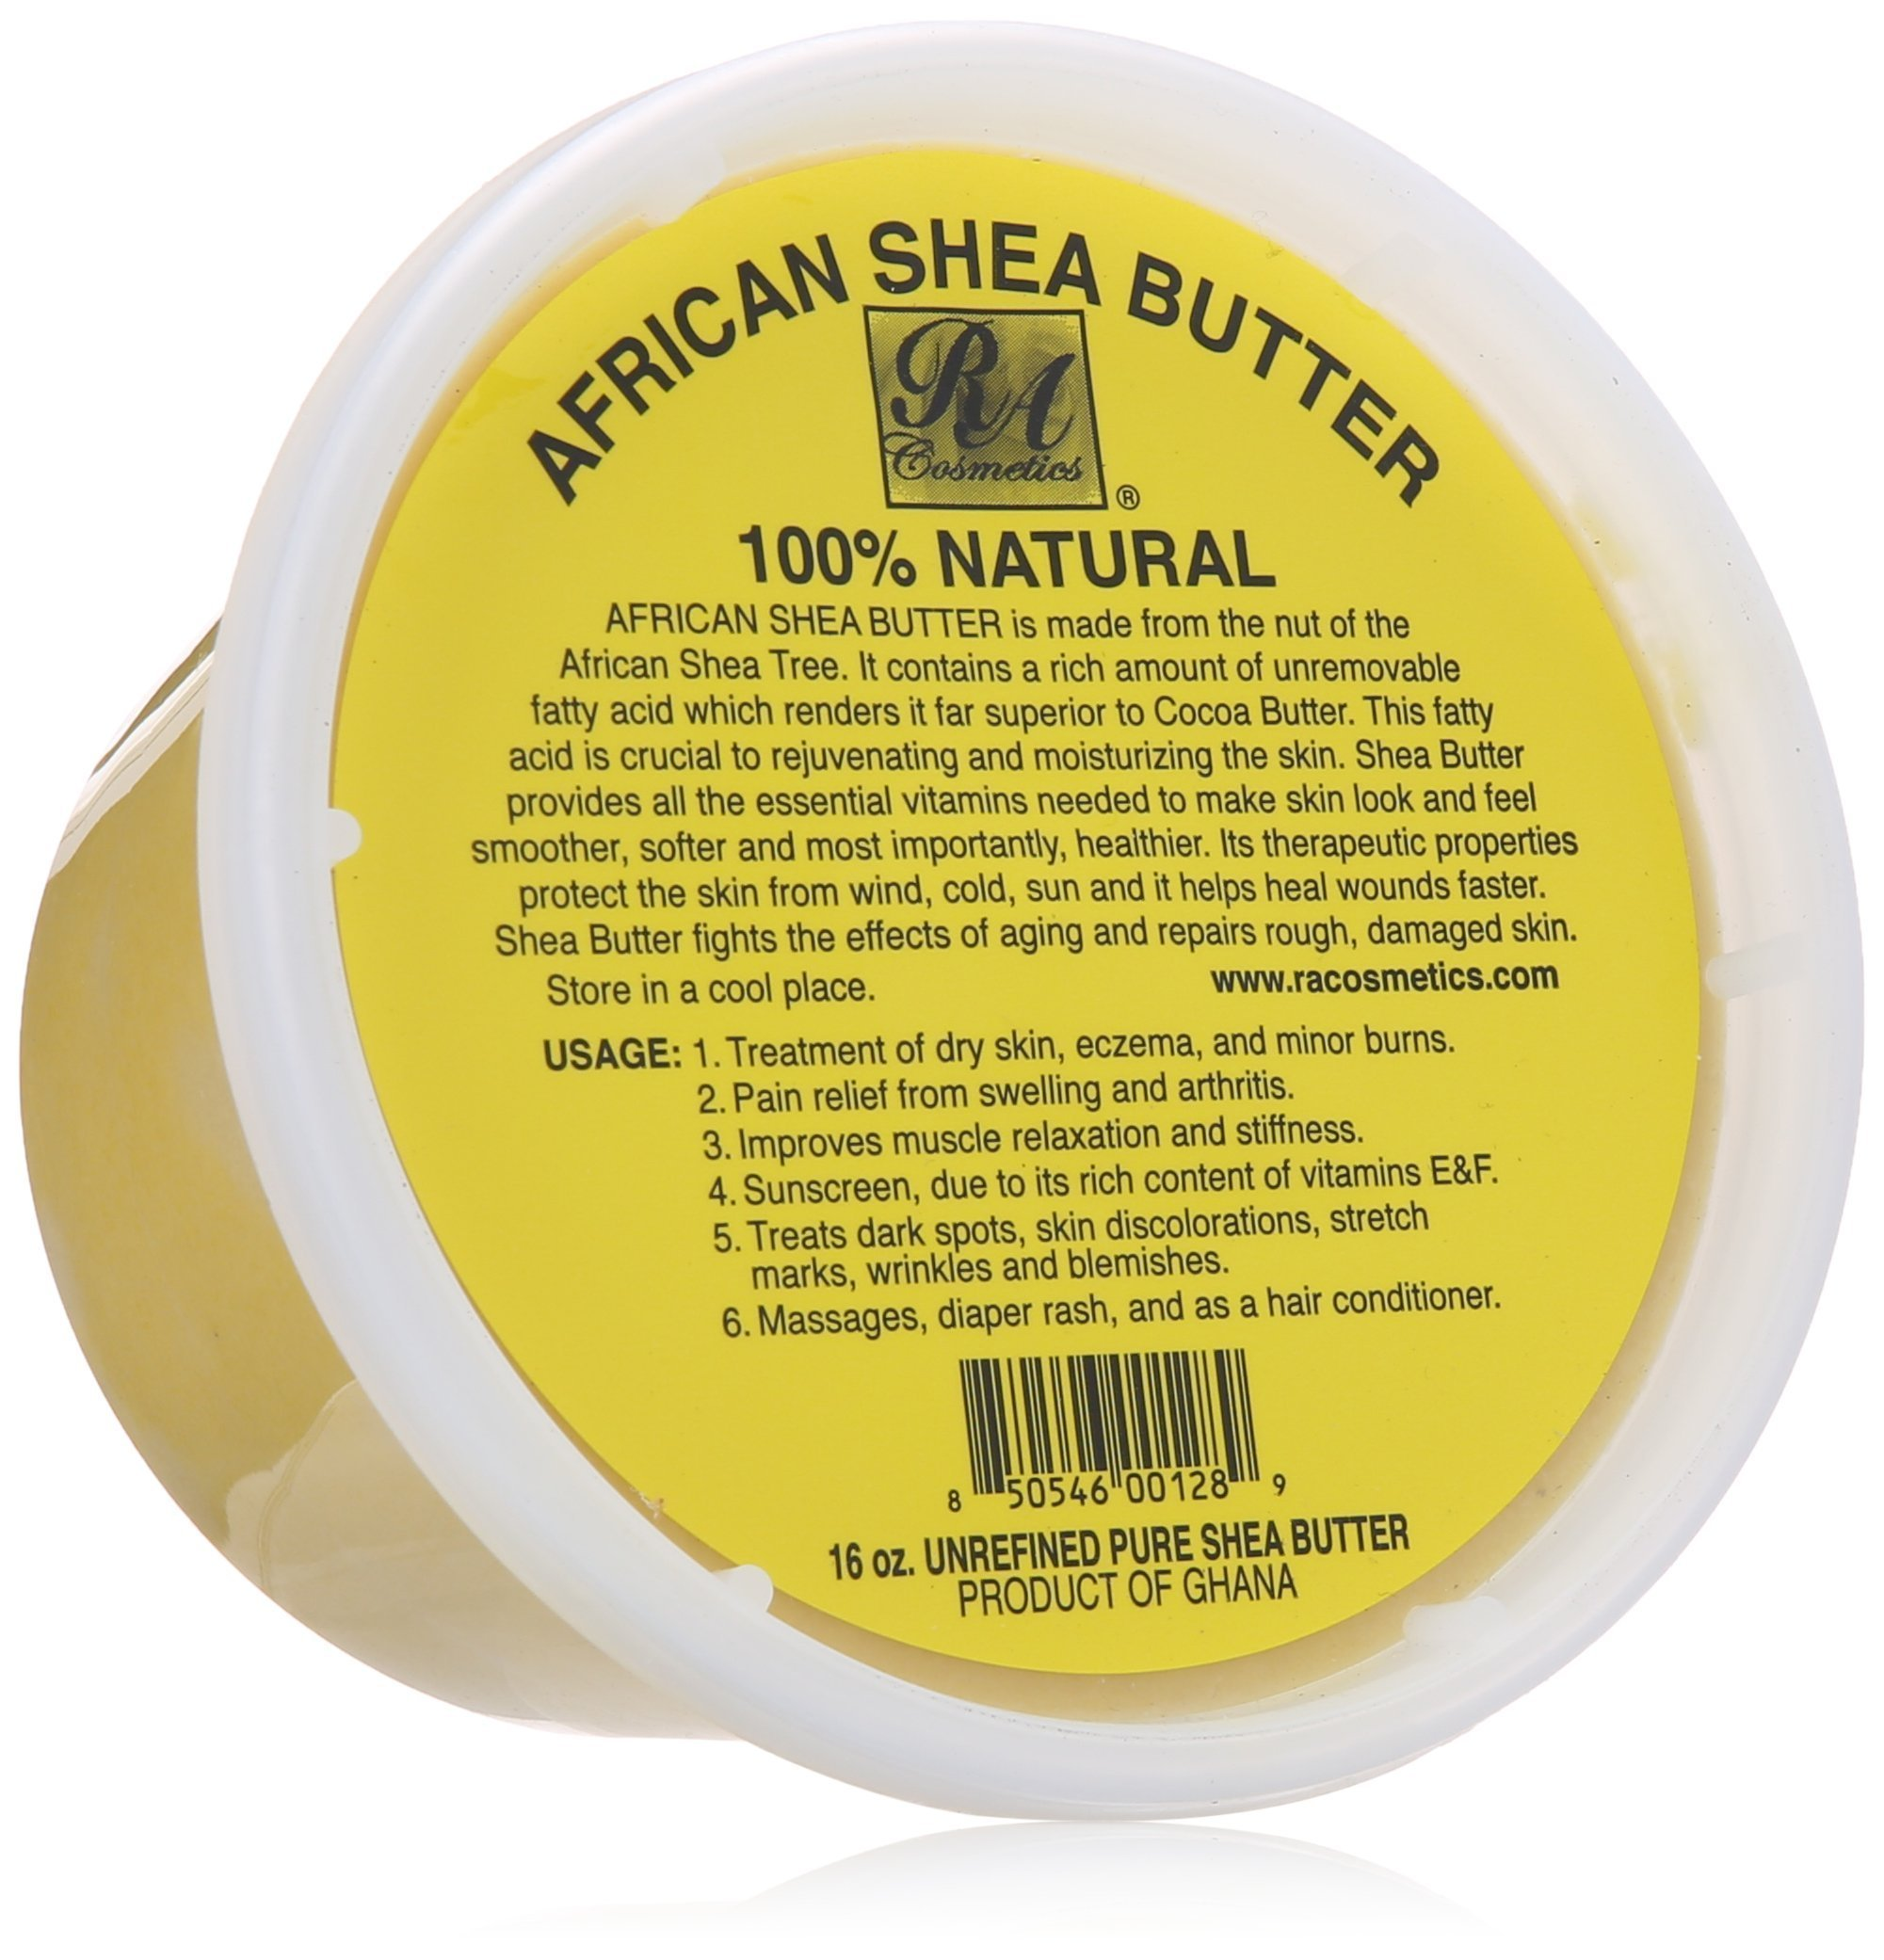 African Shea Butter 100% Natural 16oz by RA COSMETICS